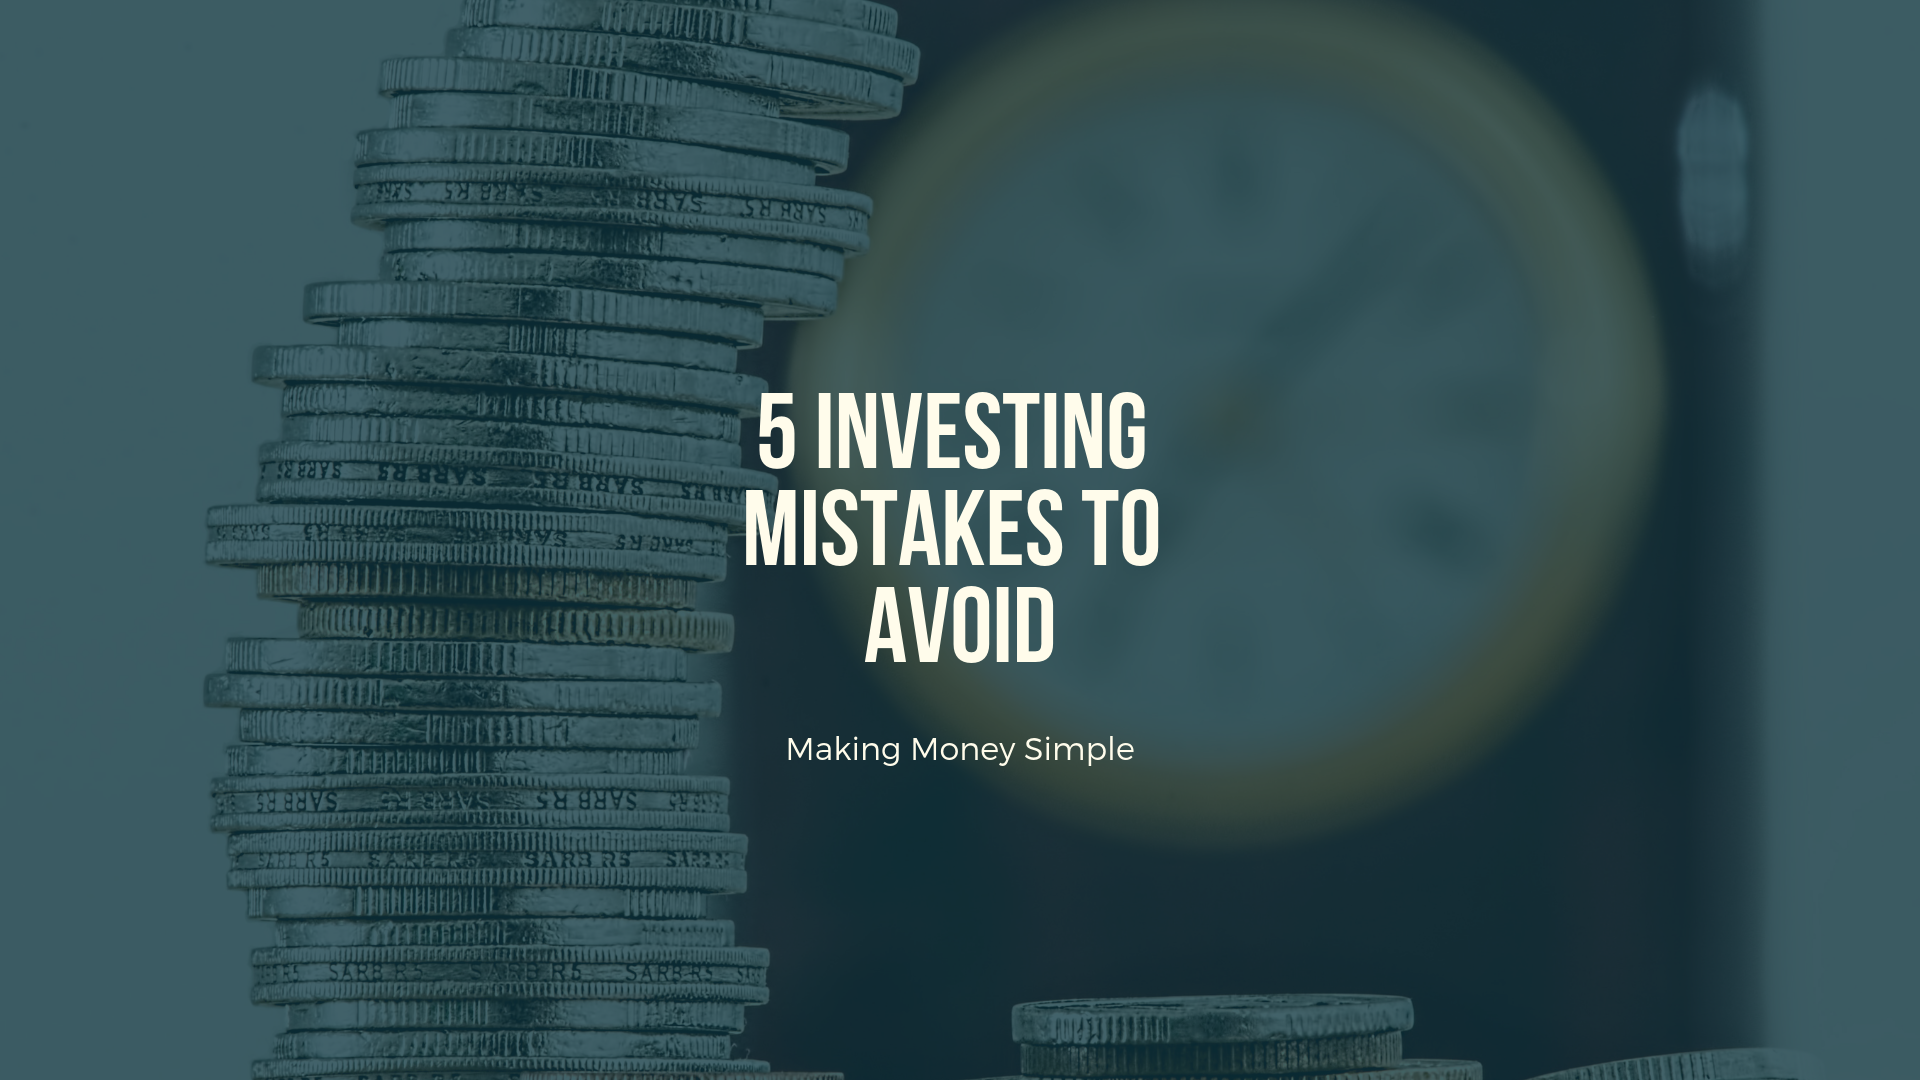 5 Investing Mistakes To Avoid